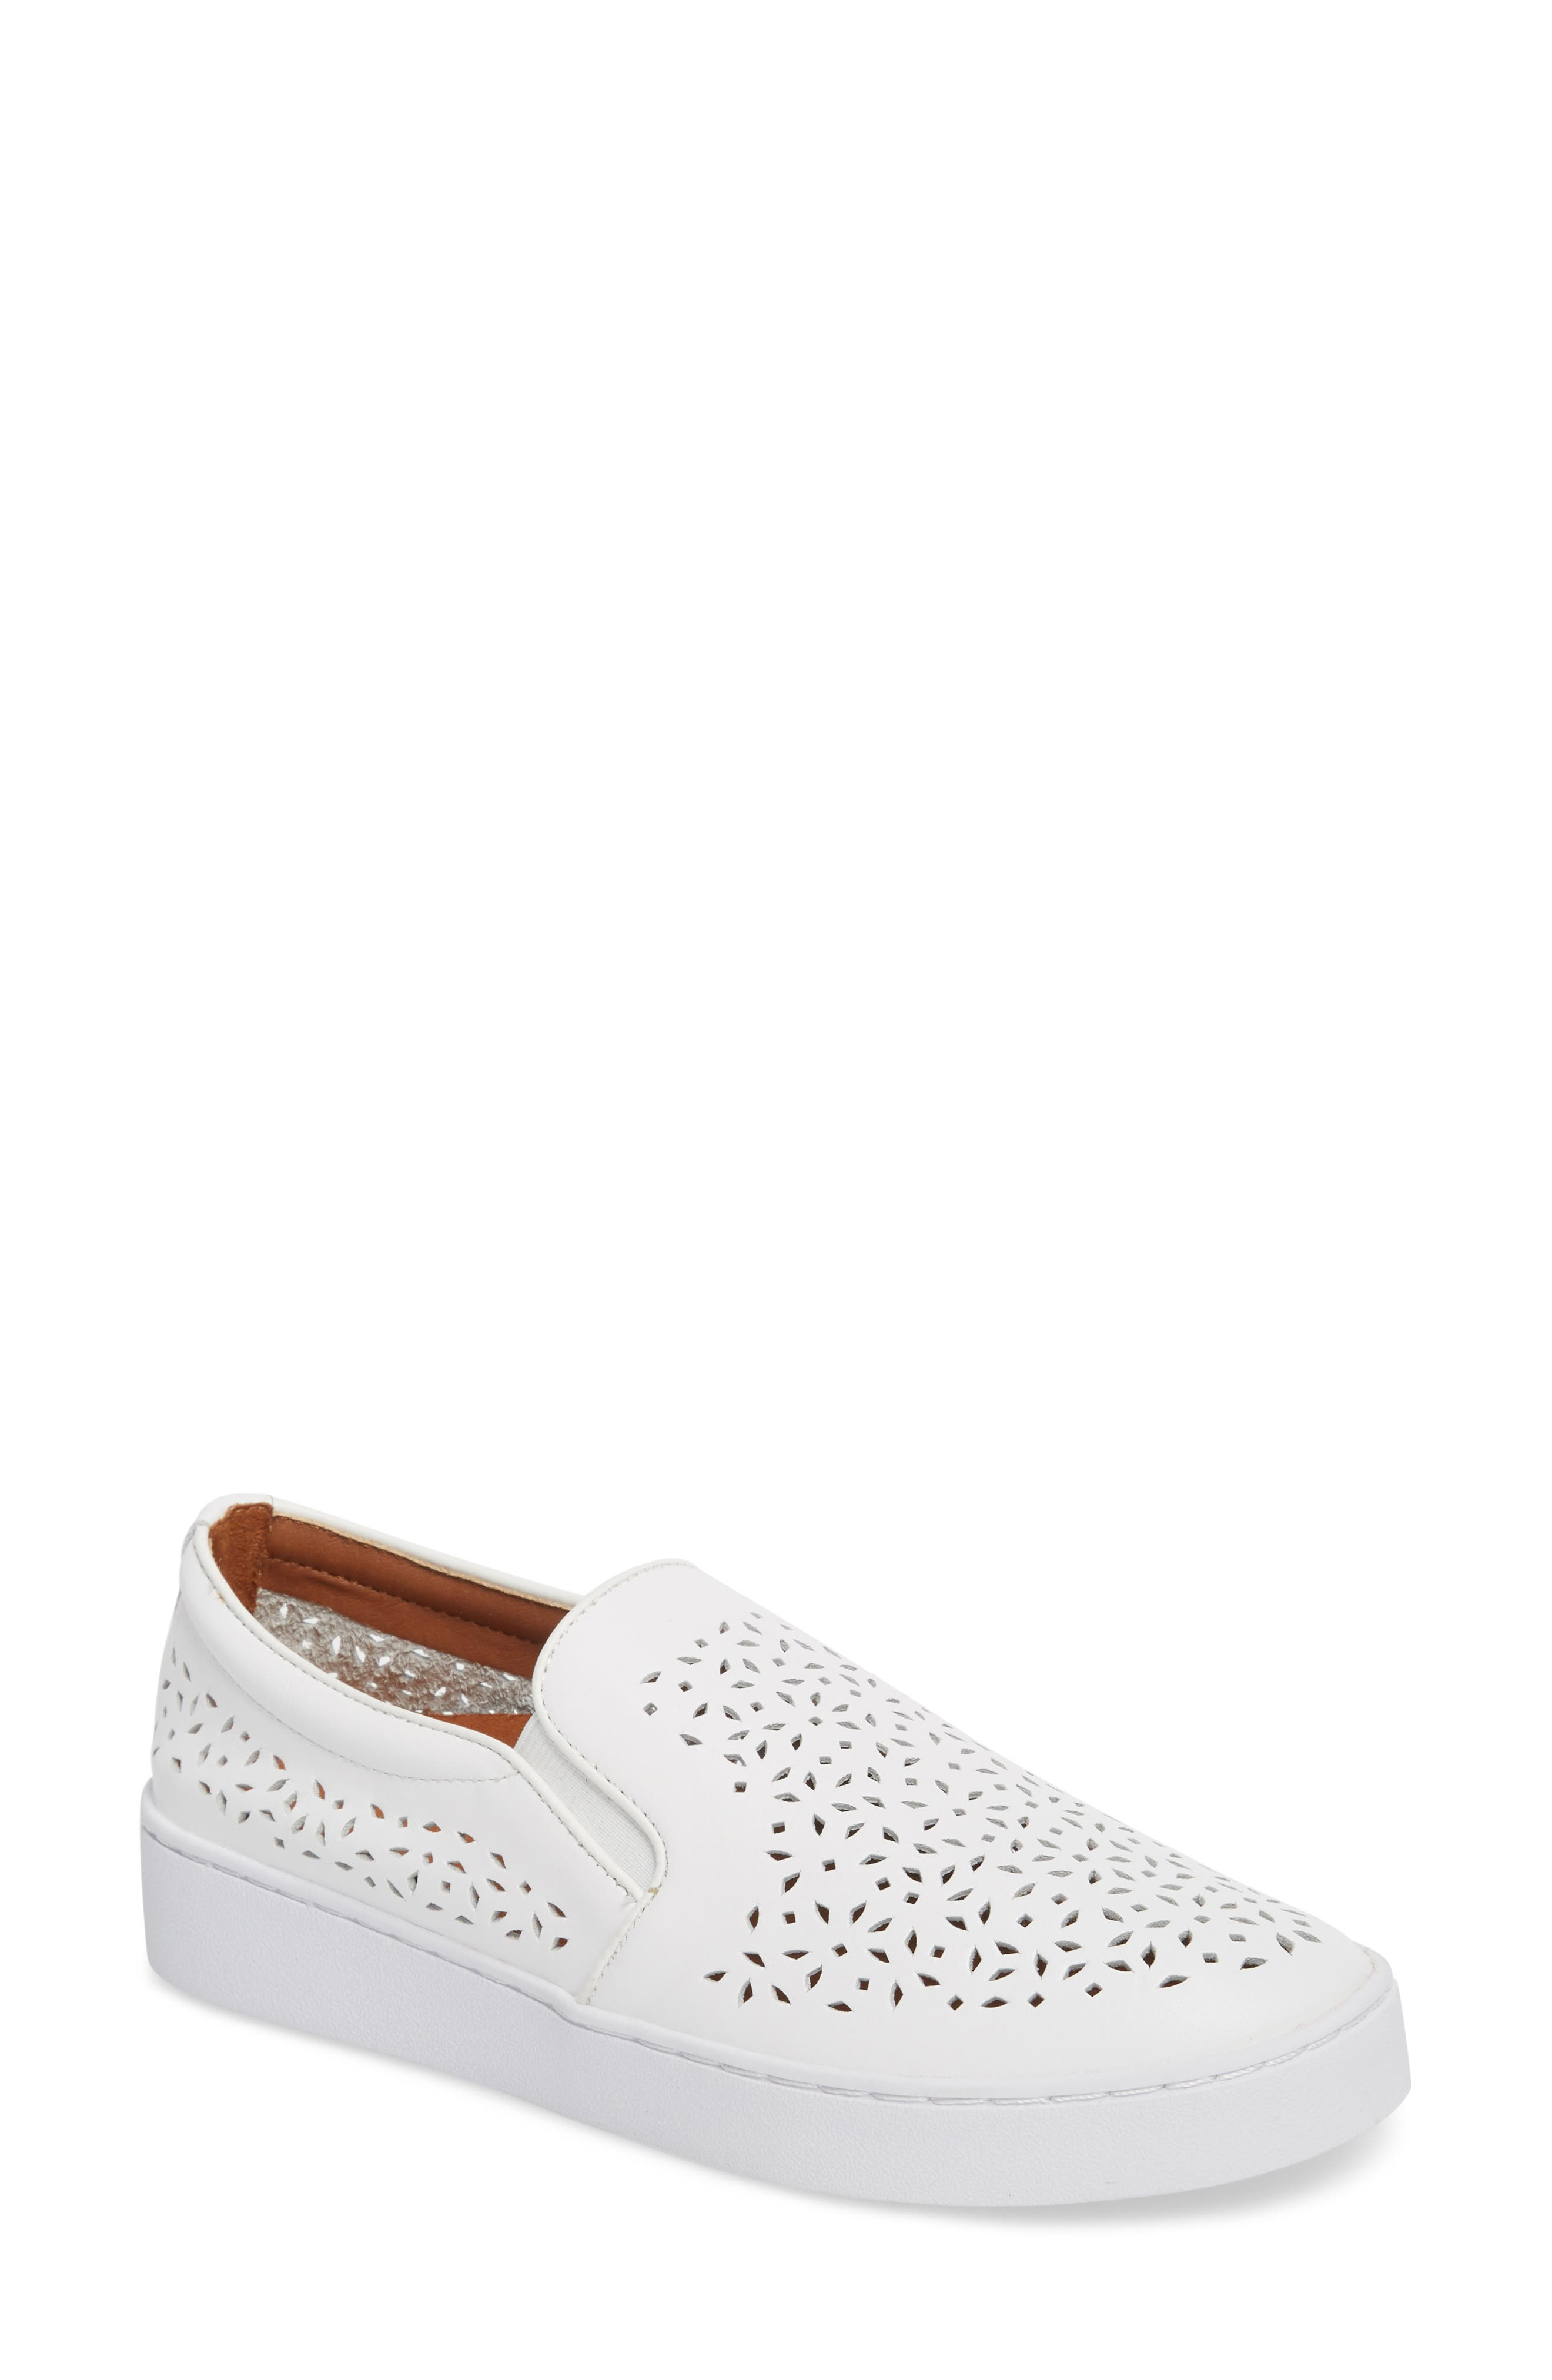 Perforated Slip-On Sneaker,                             Main thumbnail 1, color,                             WHITE LEATHER